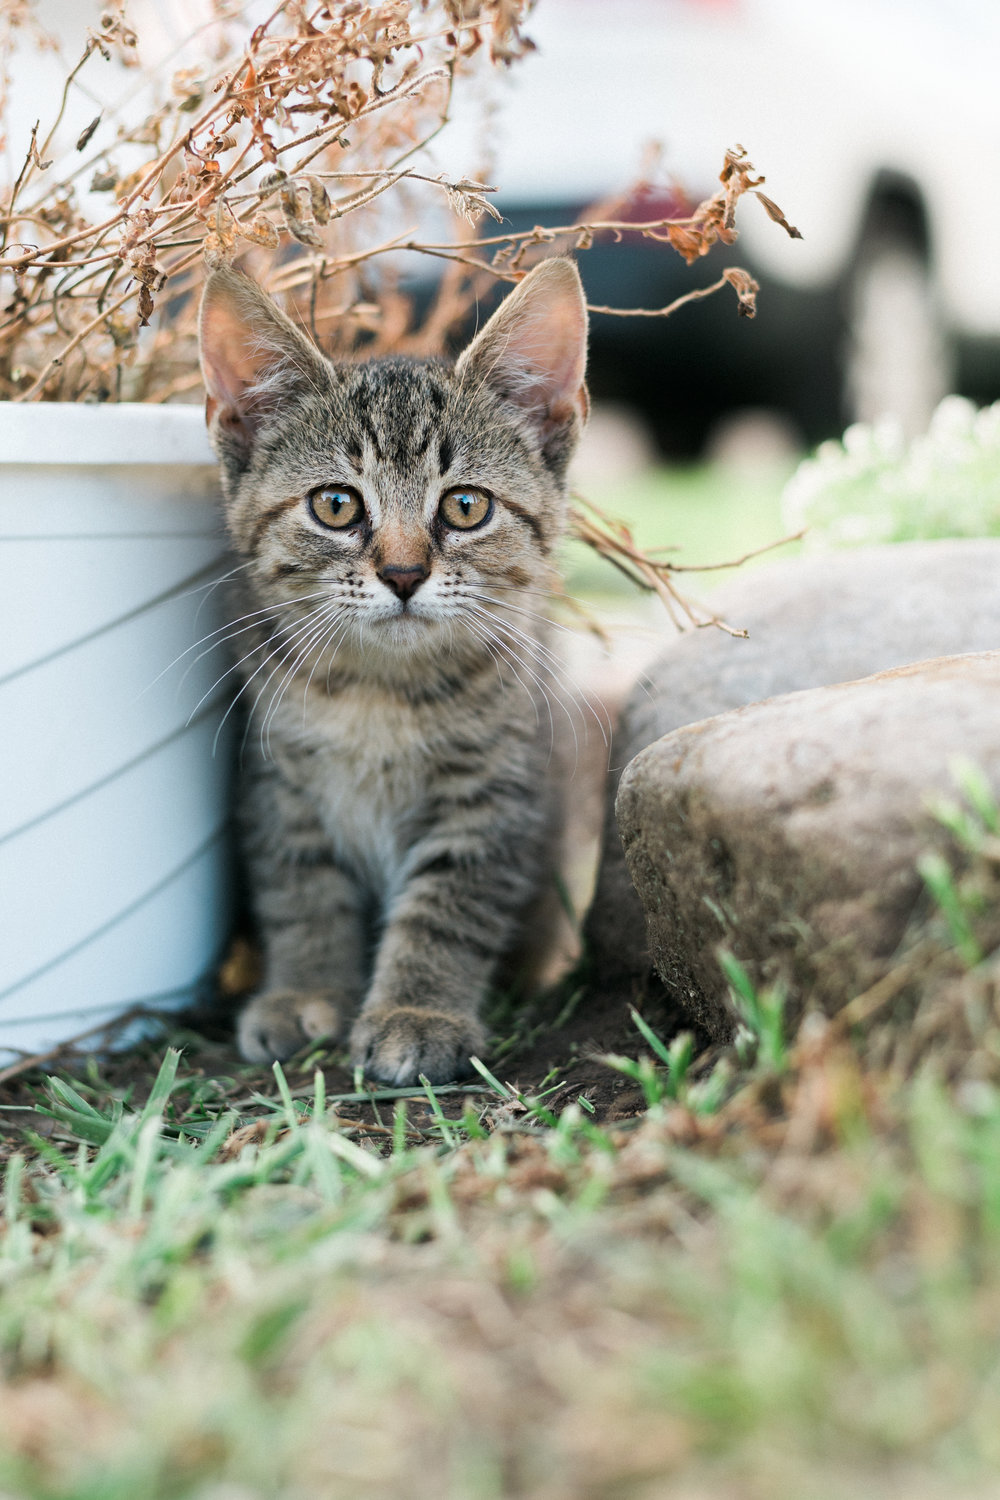 Tiny tabby kitten with brown eyes stands in between a rock and a dying potted plant.